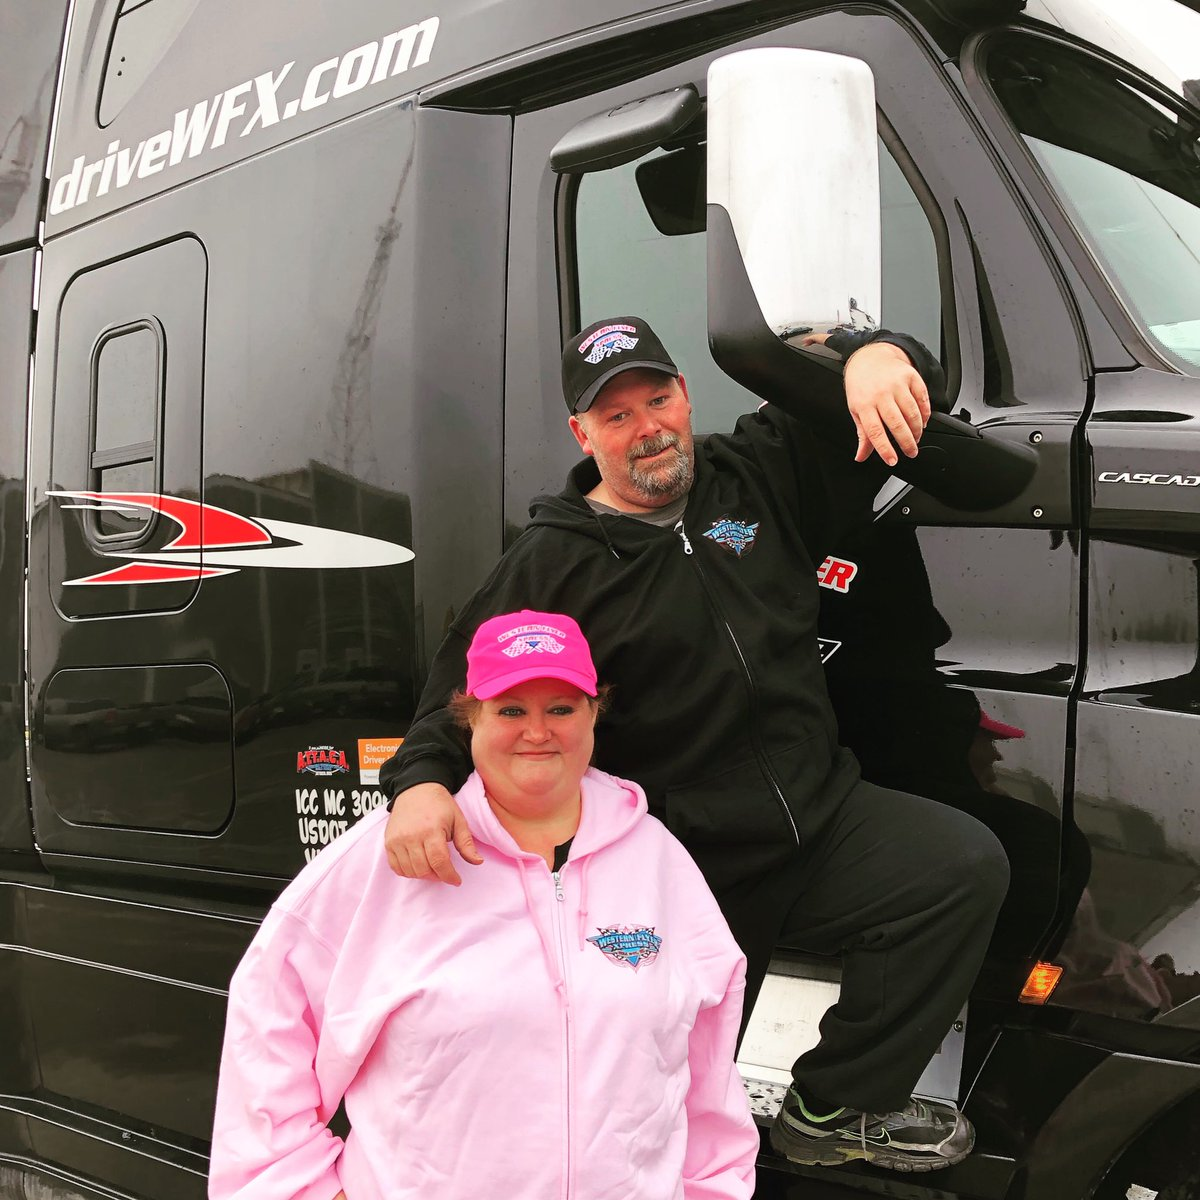 Stephanie & Jeffery joined the WFX family this week as a team. Welcome, we love teams! . . #drivewfx #driveyourdream #cdldriver #18wheelers #otrdriver #leasetoown #teamotr #trucking  #truckinglifestyle #teamtruckers